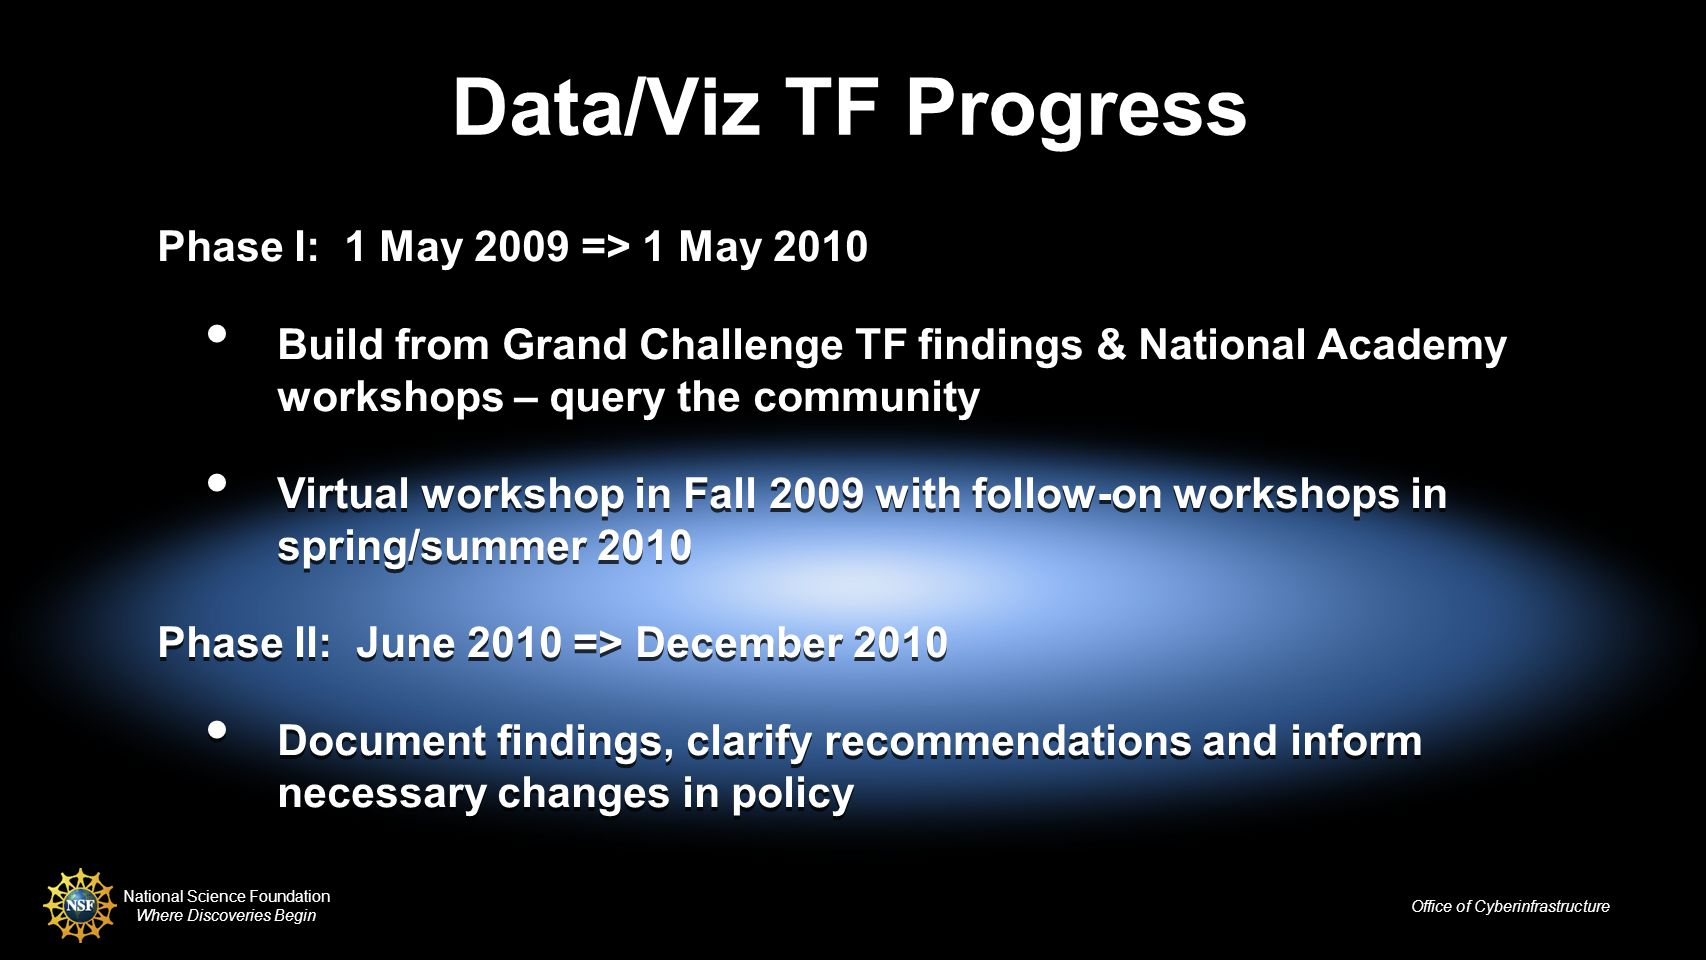 National Science Foundation Where Discoveries Begin Office of Cyberinfrastructure Data/Viz TF Progress Phase I: 1 May 2009 => 1 May 2010 Build from Grand Challenge TF findings & National Academy workshops – query the community Virtual workshop in Fall 2009 with follow-on workshops in spring/summer 2010 Phase II: June 2010 => December 2010 Document findings, clarify recommendations and inform necessary changes in policy Phase I: 1 May 2009 => 1 May 2010 Build from Grand Challenge TF findings & National Academy workshops – query the community Virtual workshop in Fall 2009 with follow-on workshops in spring/summer 2010 Phase II: June 2010 => December 2010 Document findings, clarify recommendations and inform necessary changes in policy